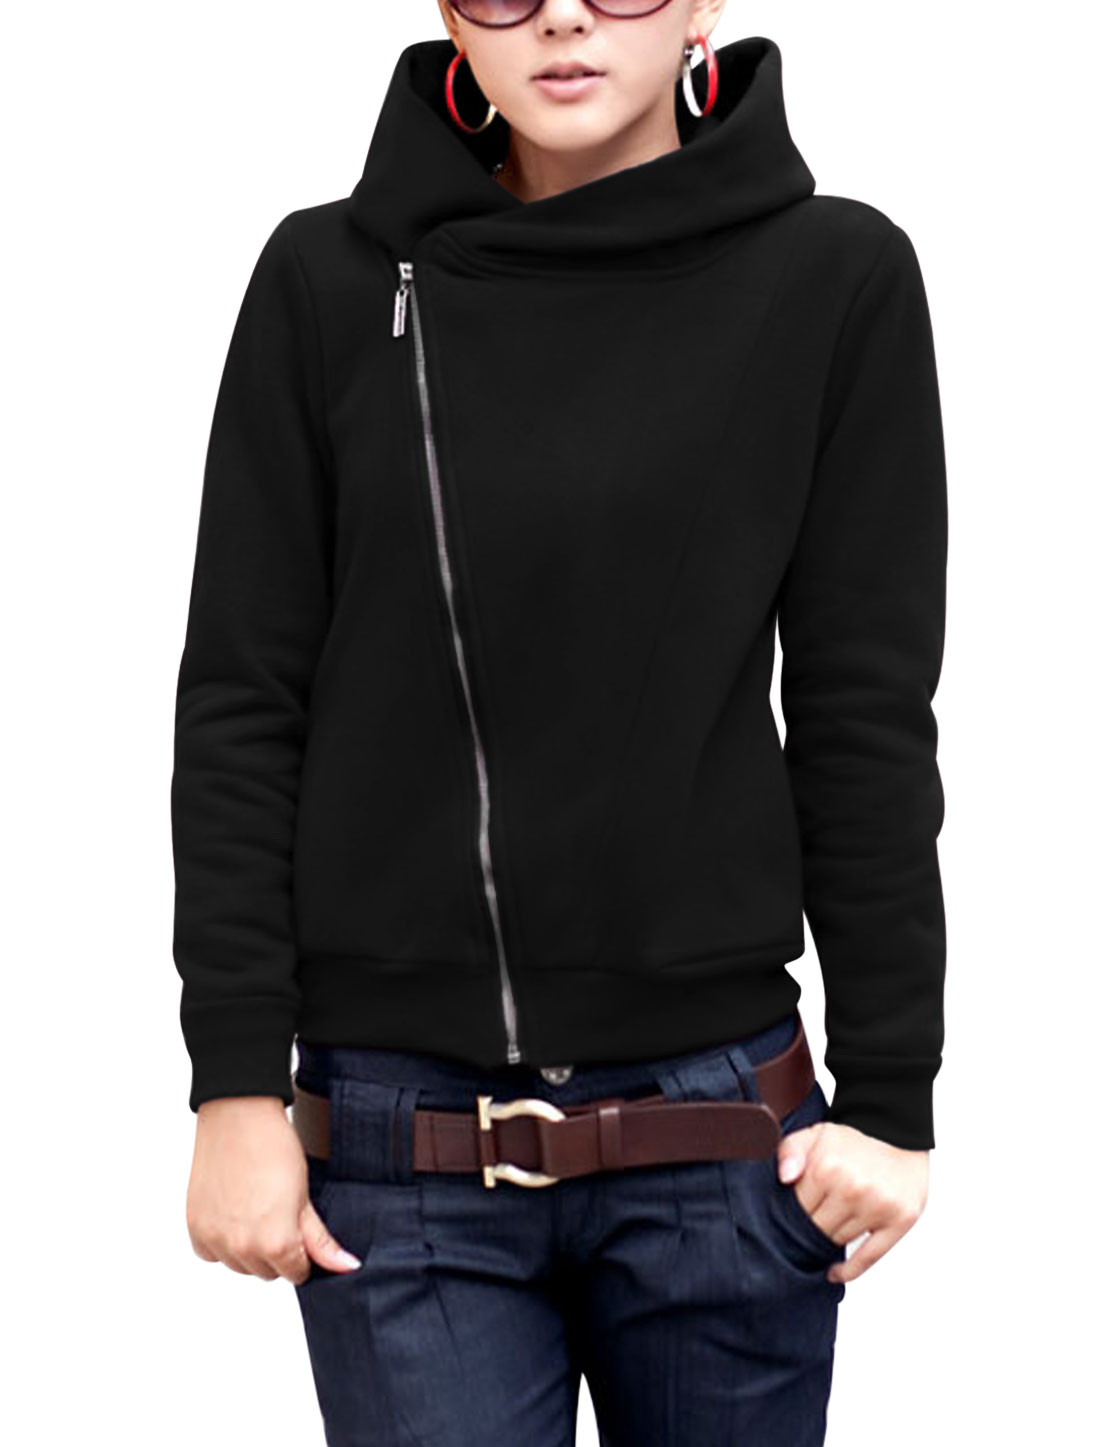 Lady Hooded Ribbed Trim Fashion Design Casual Sweatshirt Black S